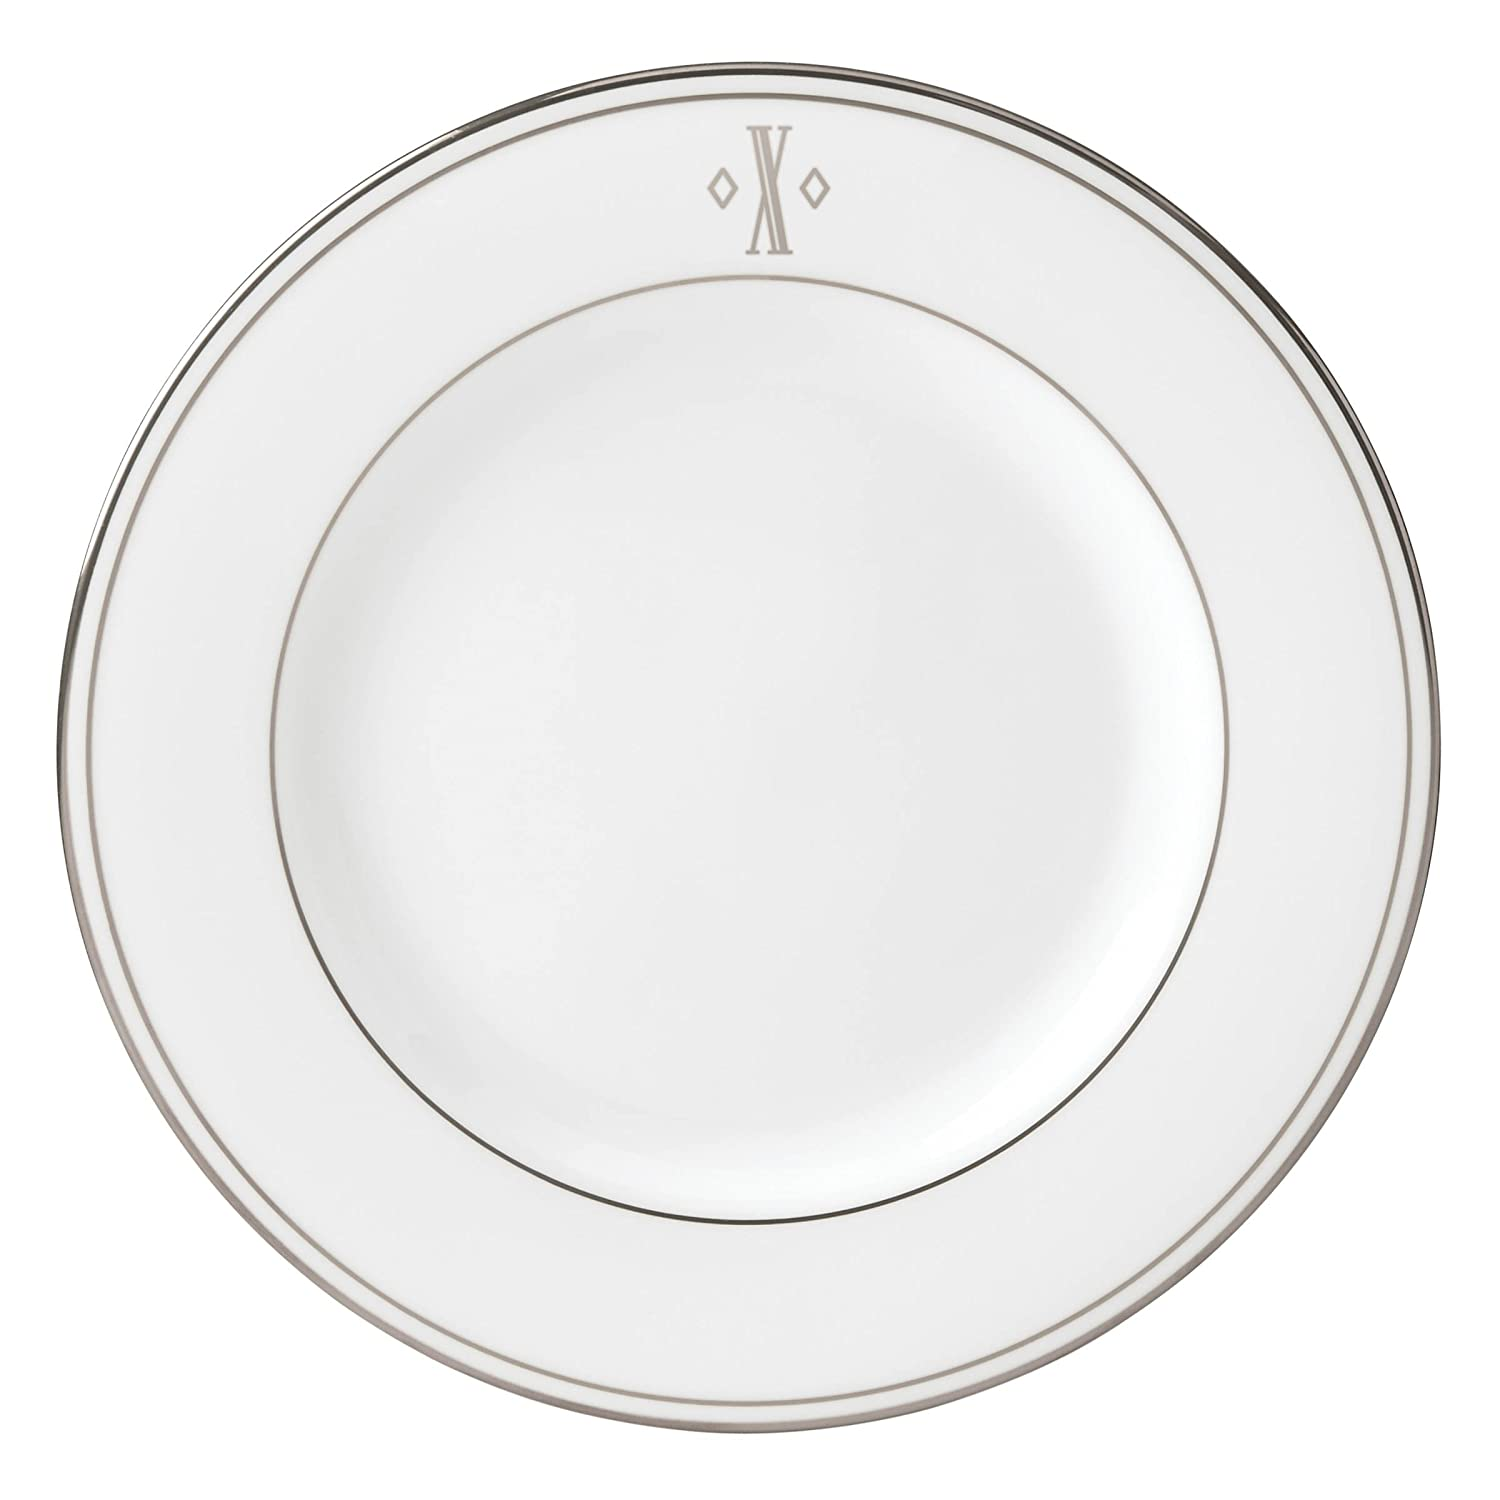 Lenox Federal Platinum Block Monogram Dinnerware Salad Plate, X 872820